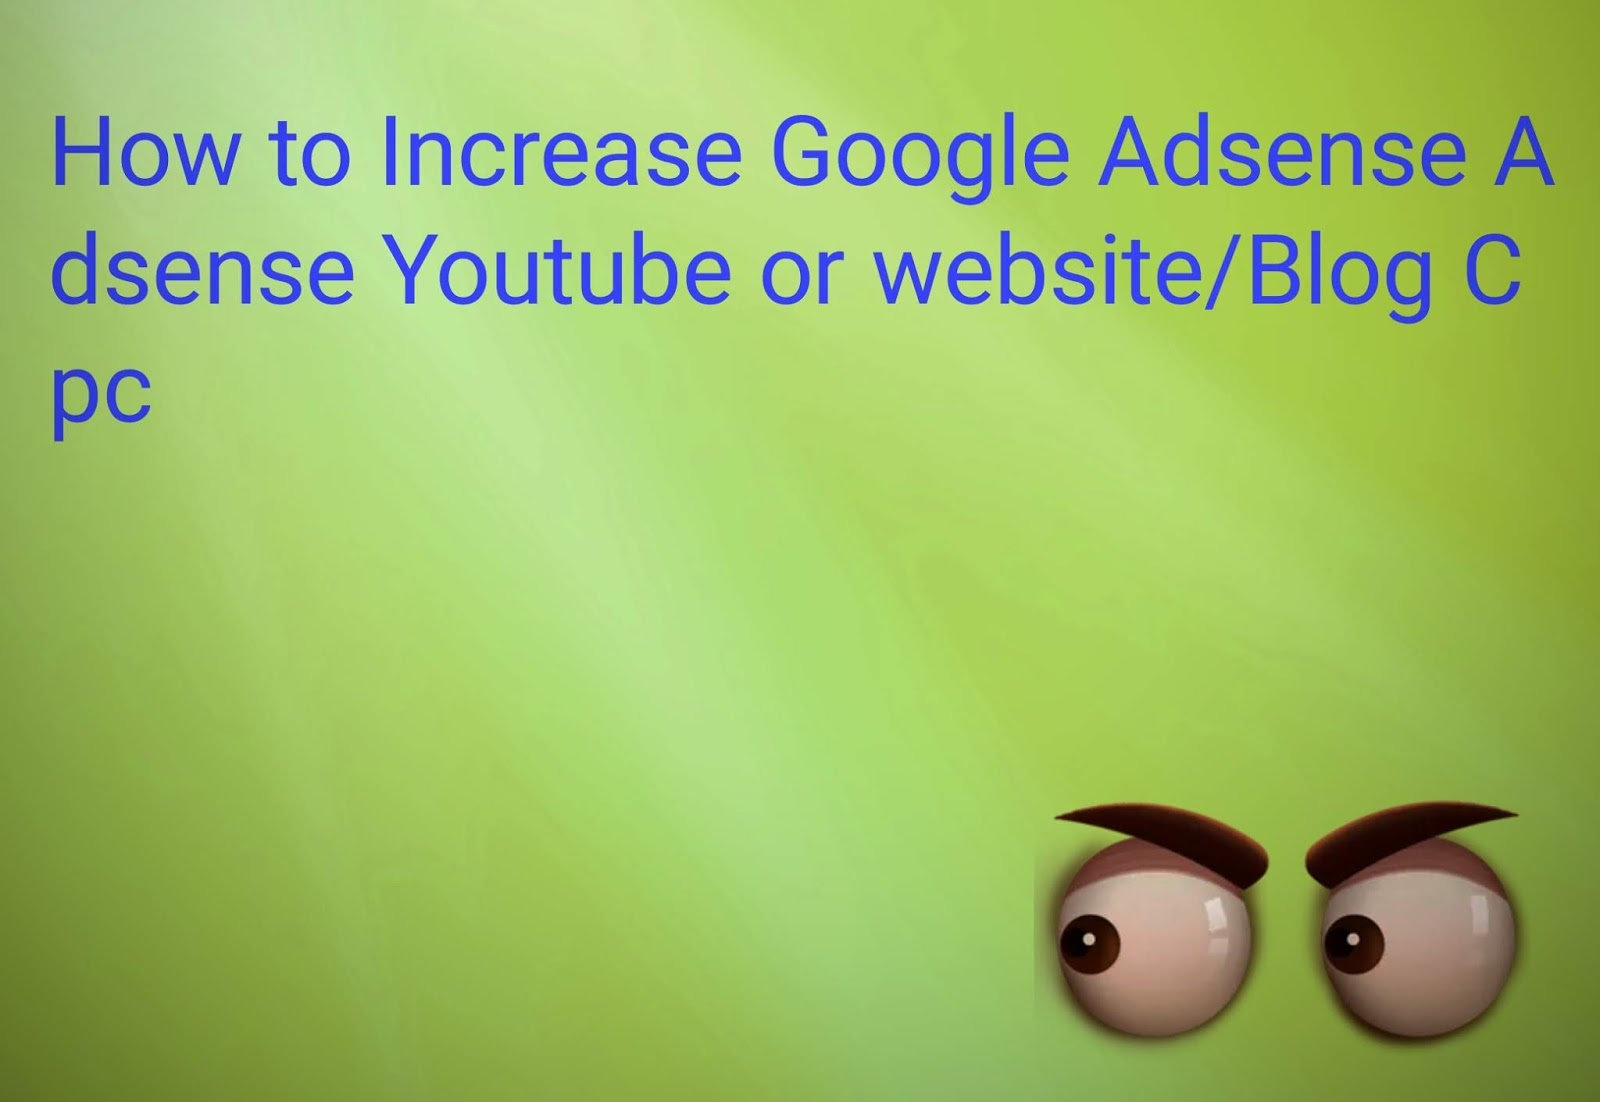 TODAY'S LIVE: How to Increase Google Adsense Cpc Get Great Keywords